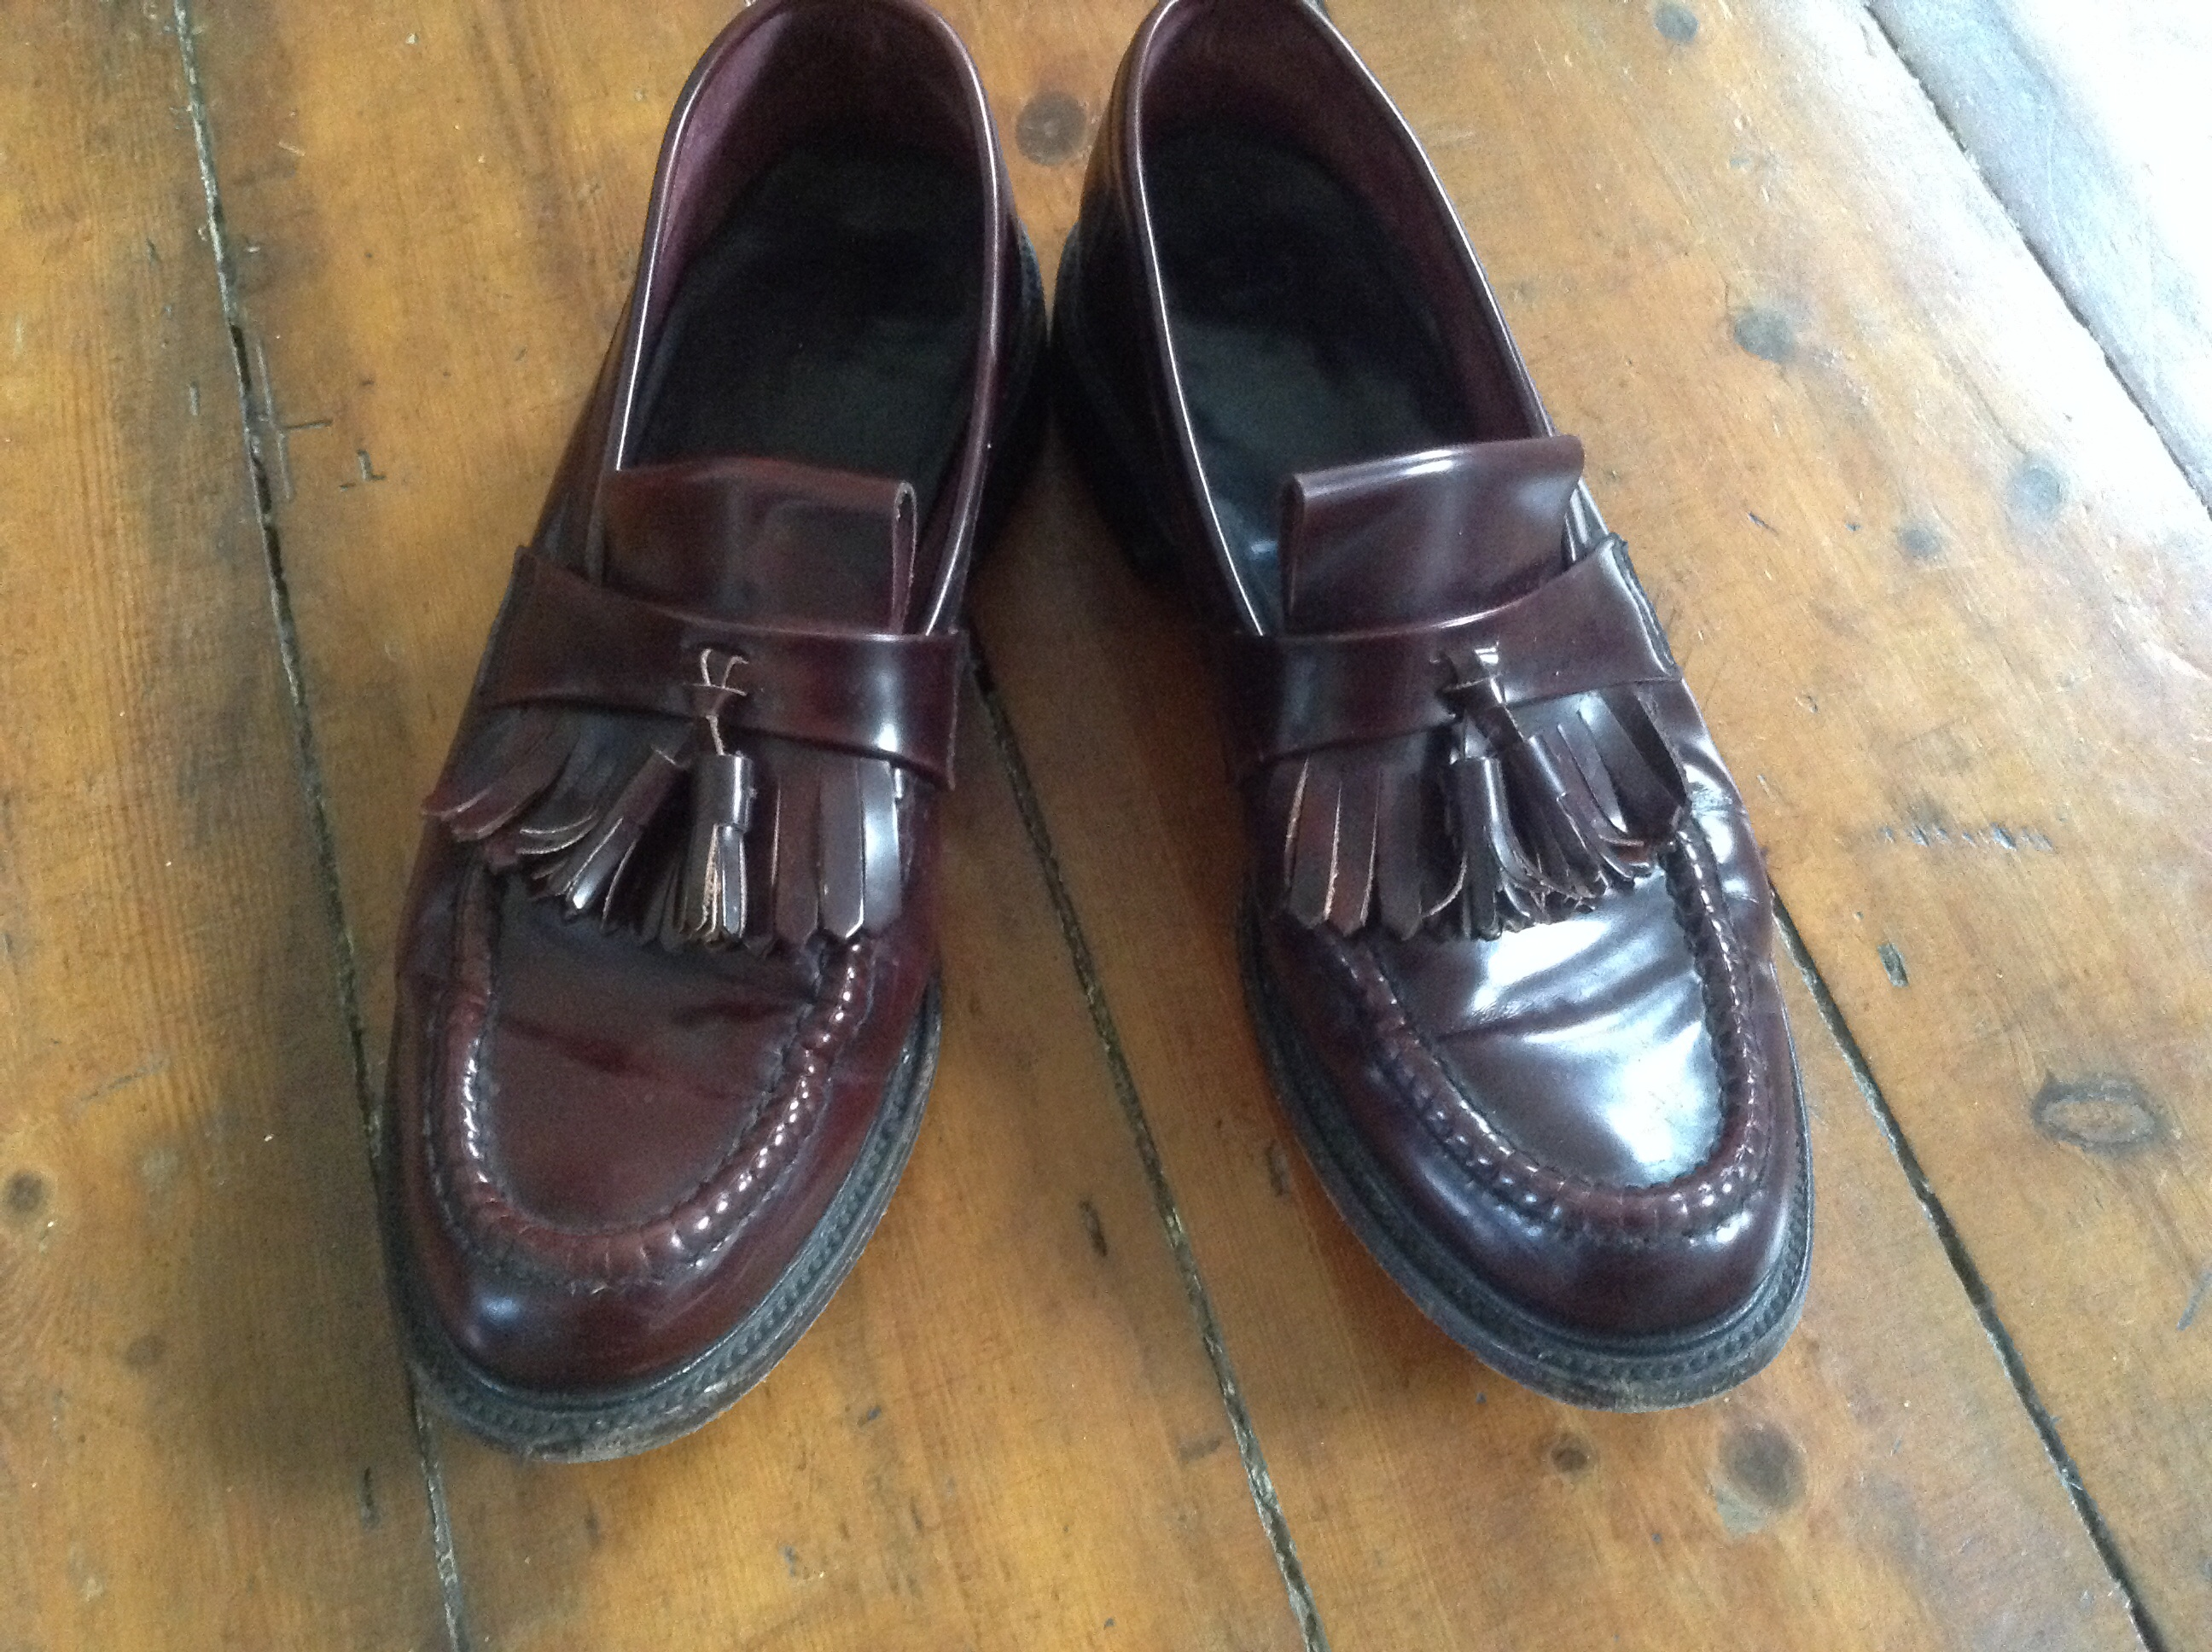 A Pair  of Loakes Oxblood Tassel Loafers